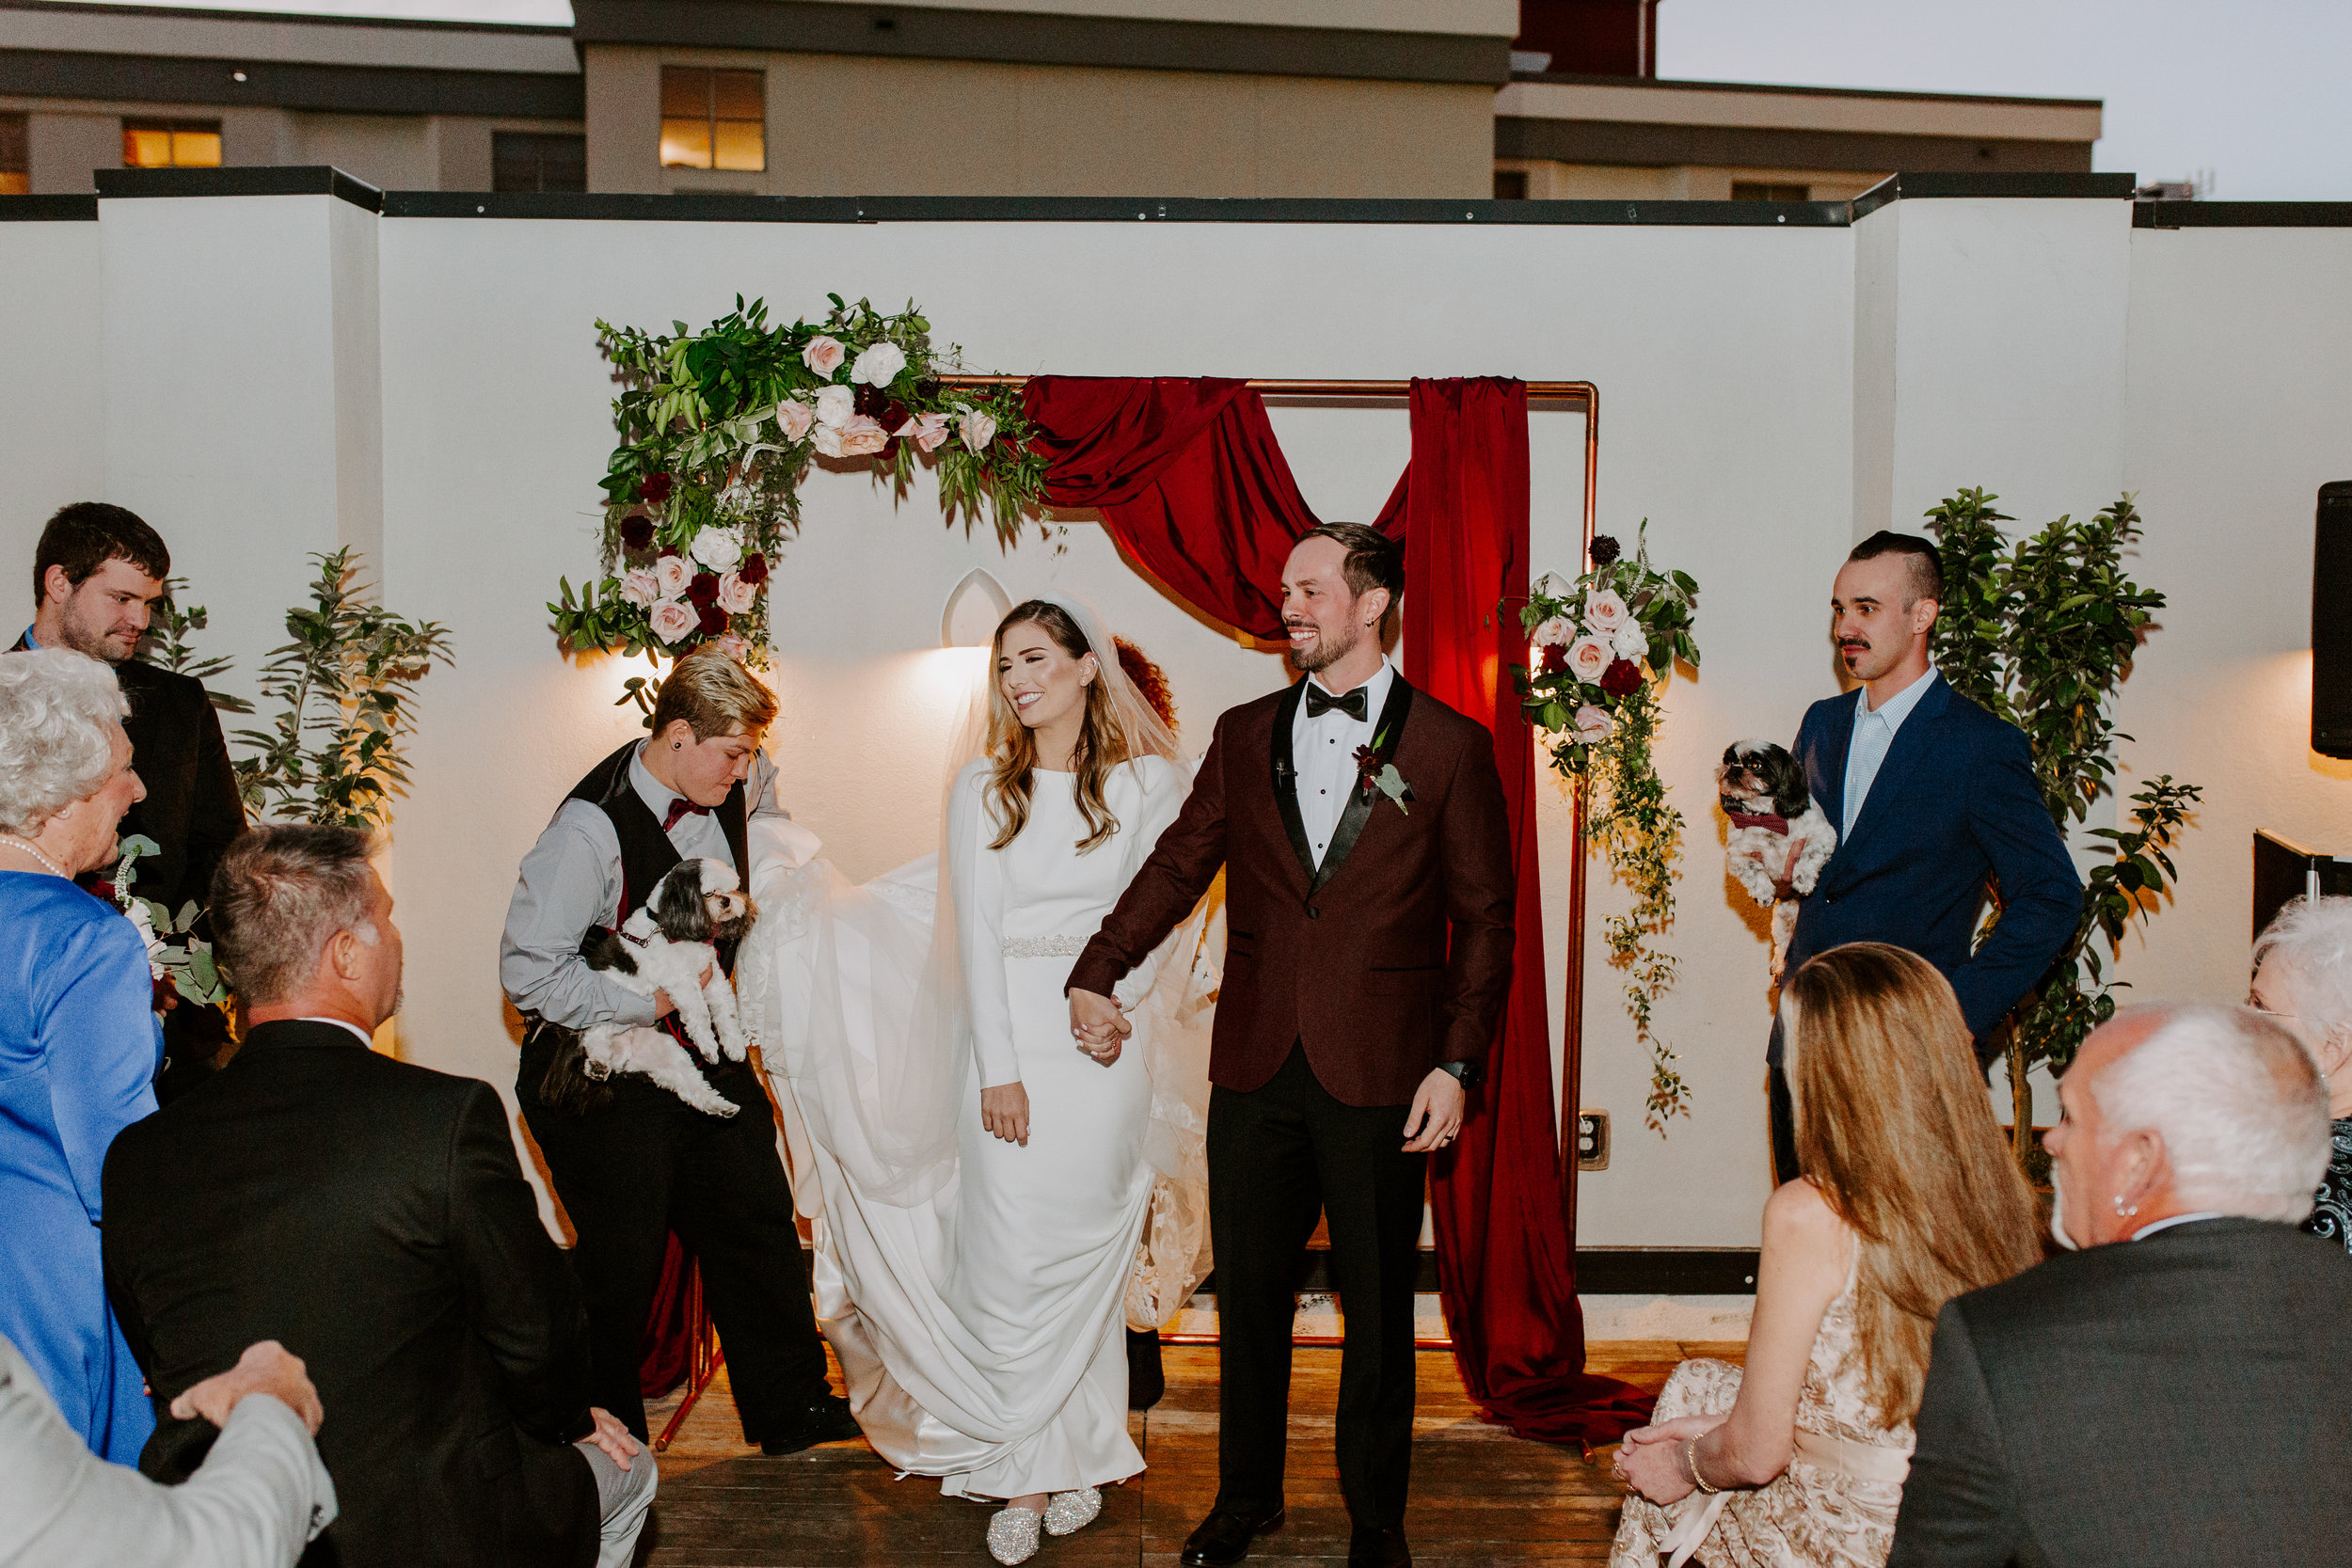 Catahoula Hotel Rooftop Wedding Ceremony New Orleans Wedding Photographer Ashley Biltz Photography45.jpg